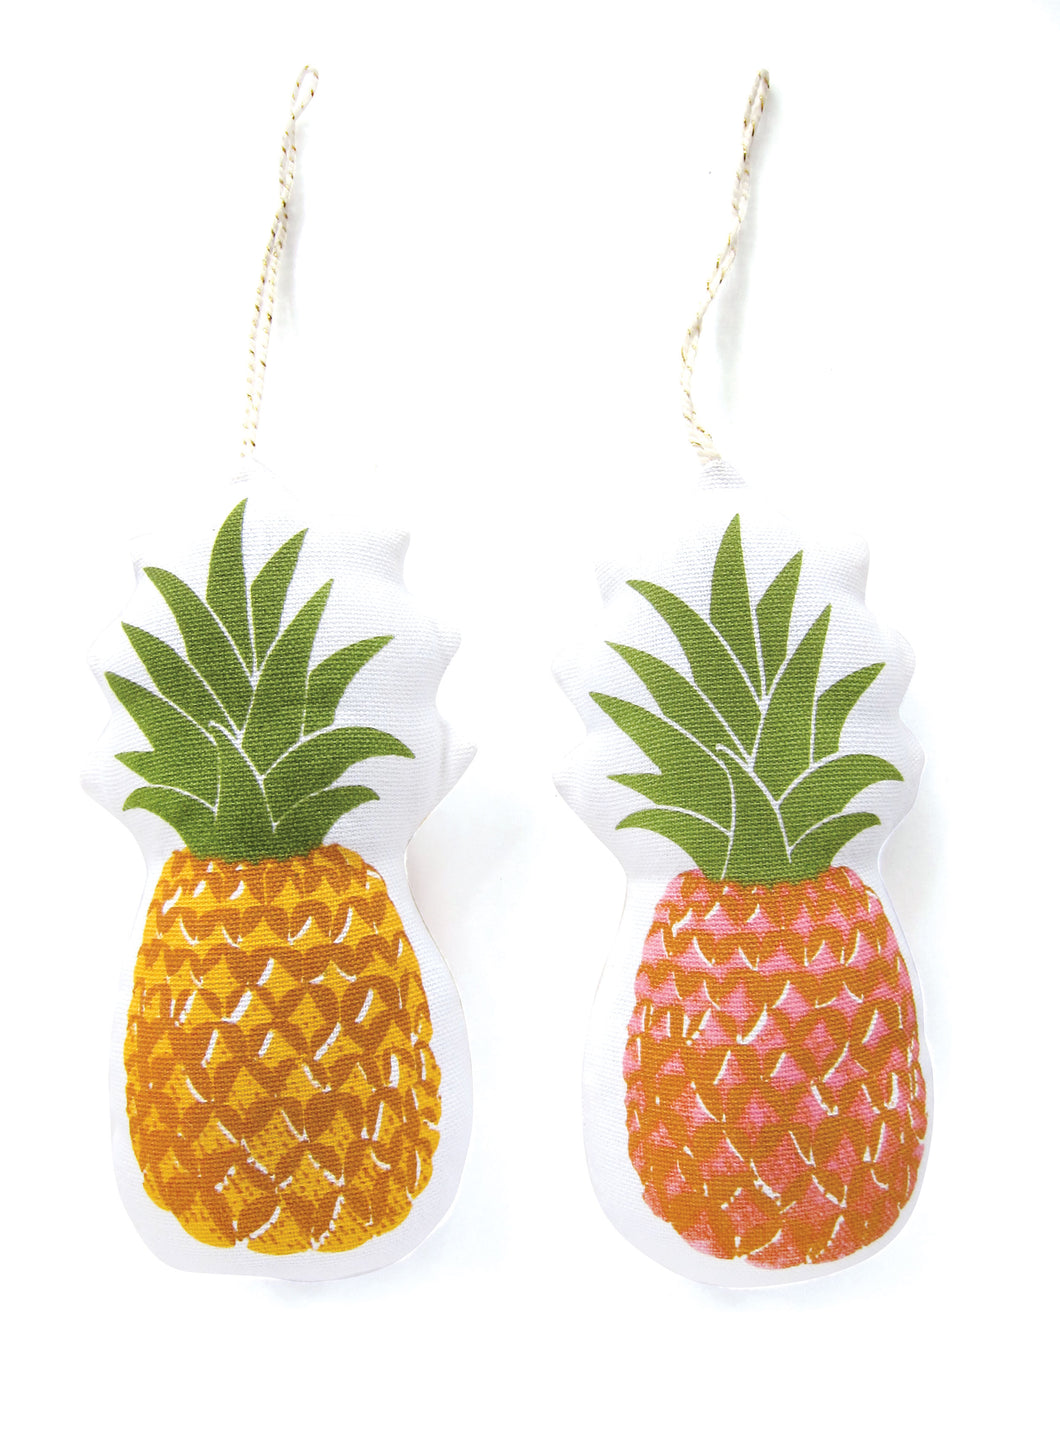 PINEAPPLE Holiday Ornament